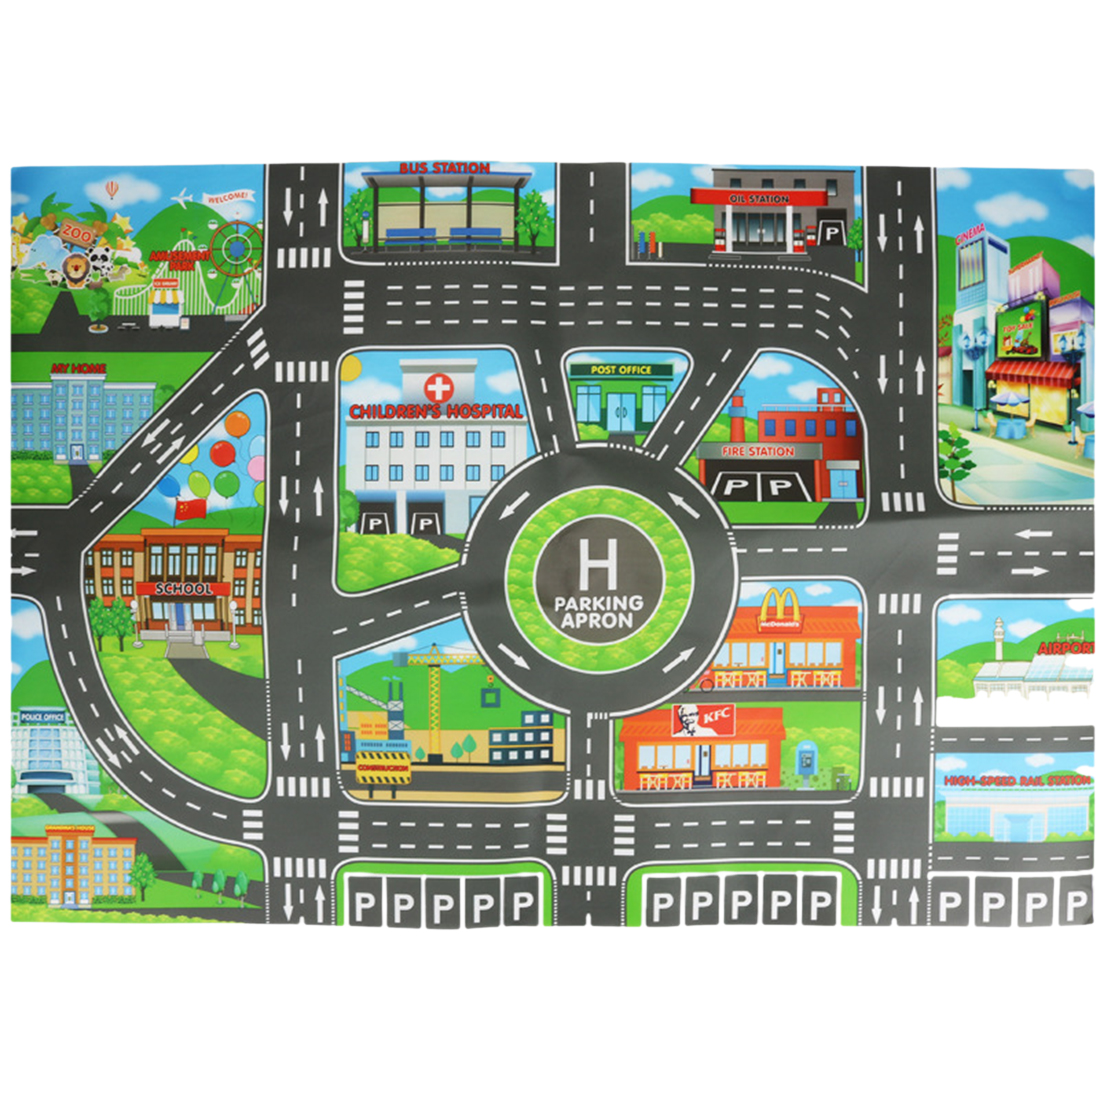 Town Road City Parking Scene Map Waterproof Foldable Mat English Edition Vehicles Toys For Kids Children Early Development Toys